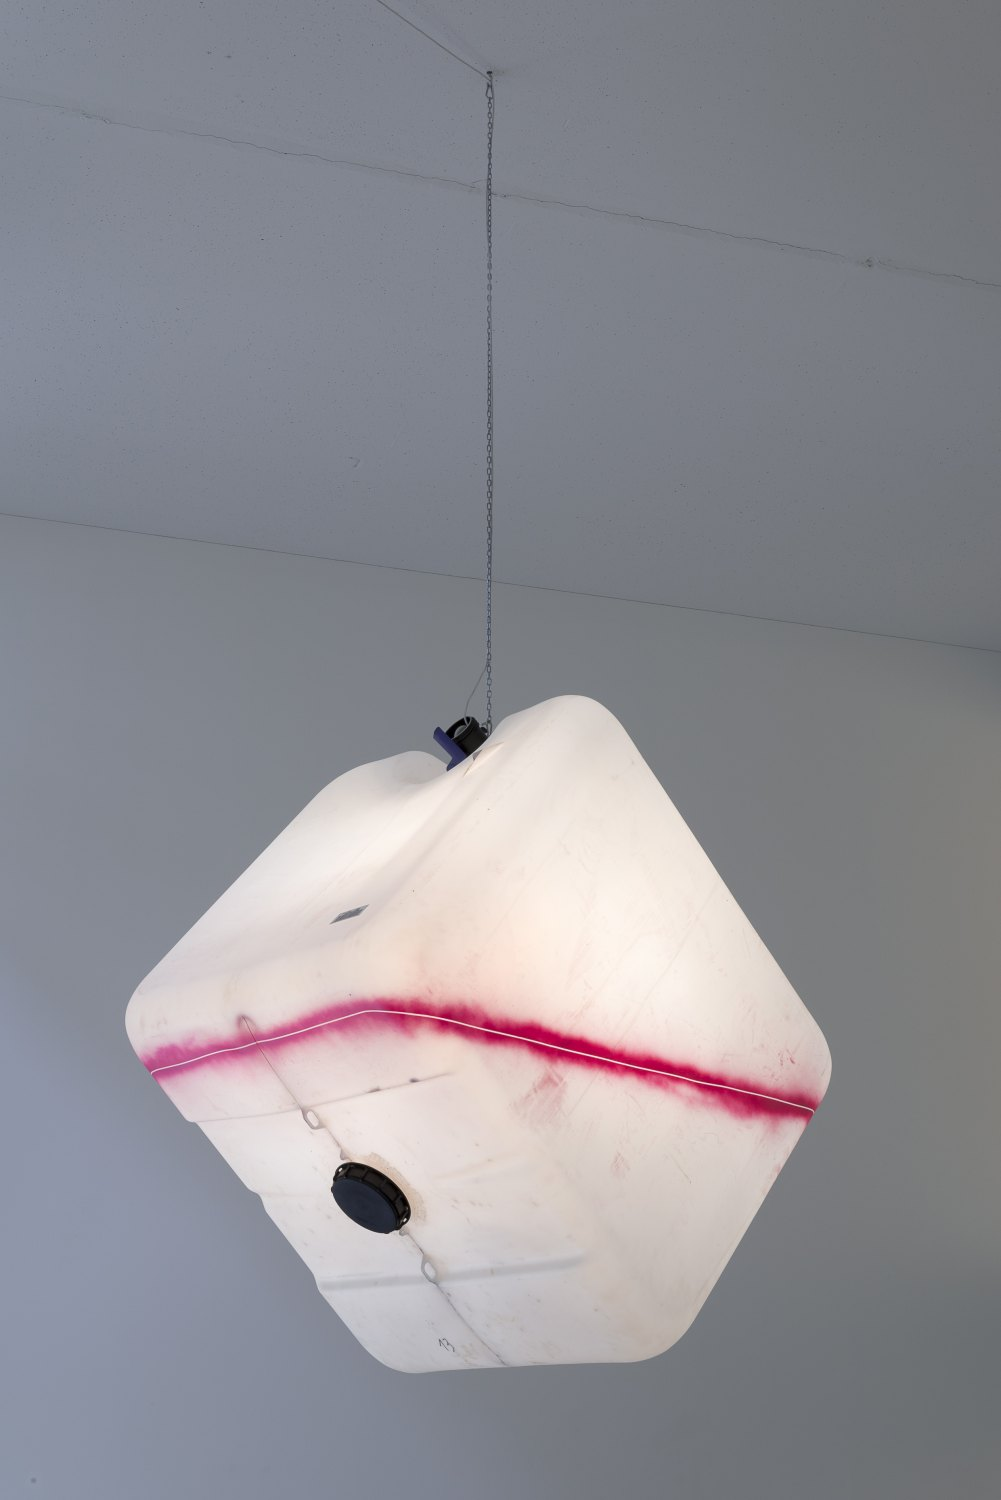 Klara Lidén Untitled, 2015 Lamp, plastic, spray paint, 120 × 100 × 100 cm